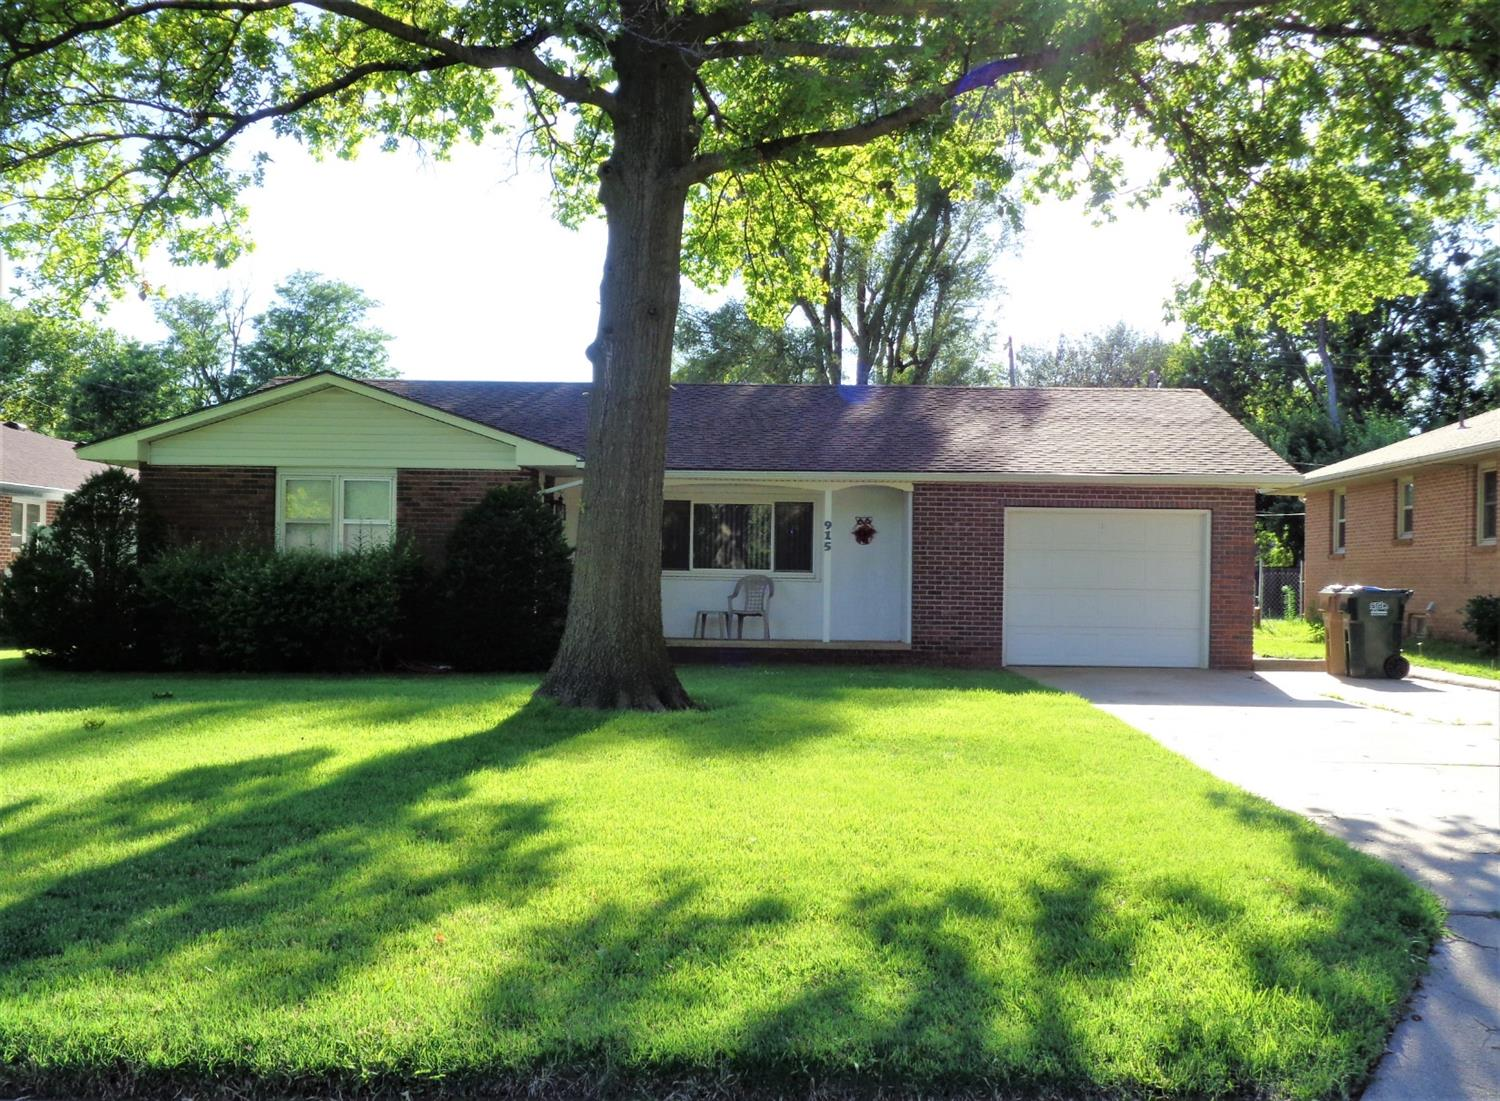 Very well maintained home is this Brick 3 bedroom, 1 bath home. It has a single attached garage with an insulated door, large backyard. Exterior is maintenance free. This home is priced to sell! Call today for your private showing.